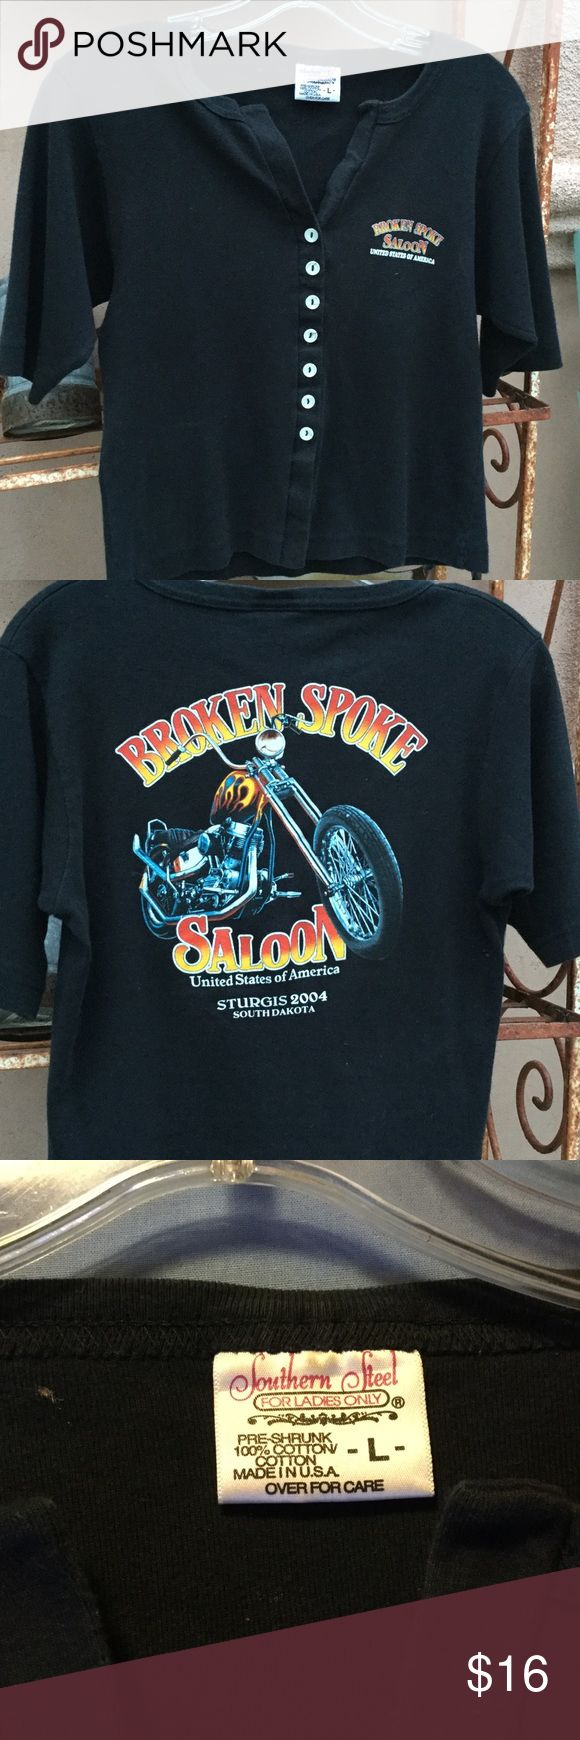 """Sturgis, Broken Spoke Saloon Crop tee Quality blk tee, 2004 HD RALLY tee shirt, button up front. Tagged LG, length is 19"""", pit to pit laying flat 17"""", so fits more like a Med Southern steel Tops Tees - Short Sleeve"""